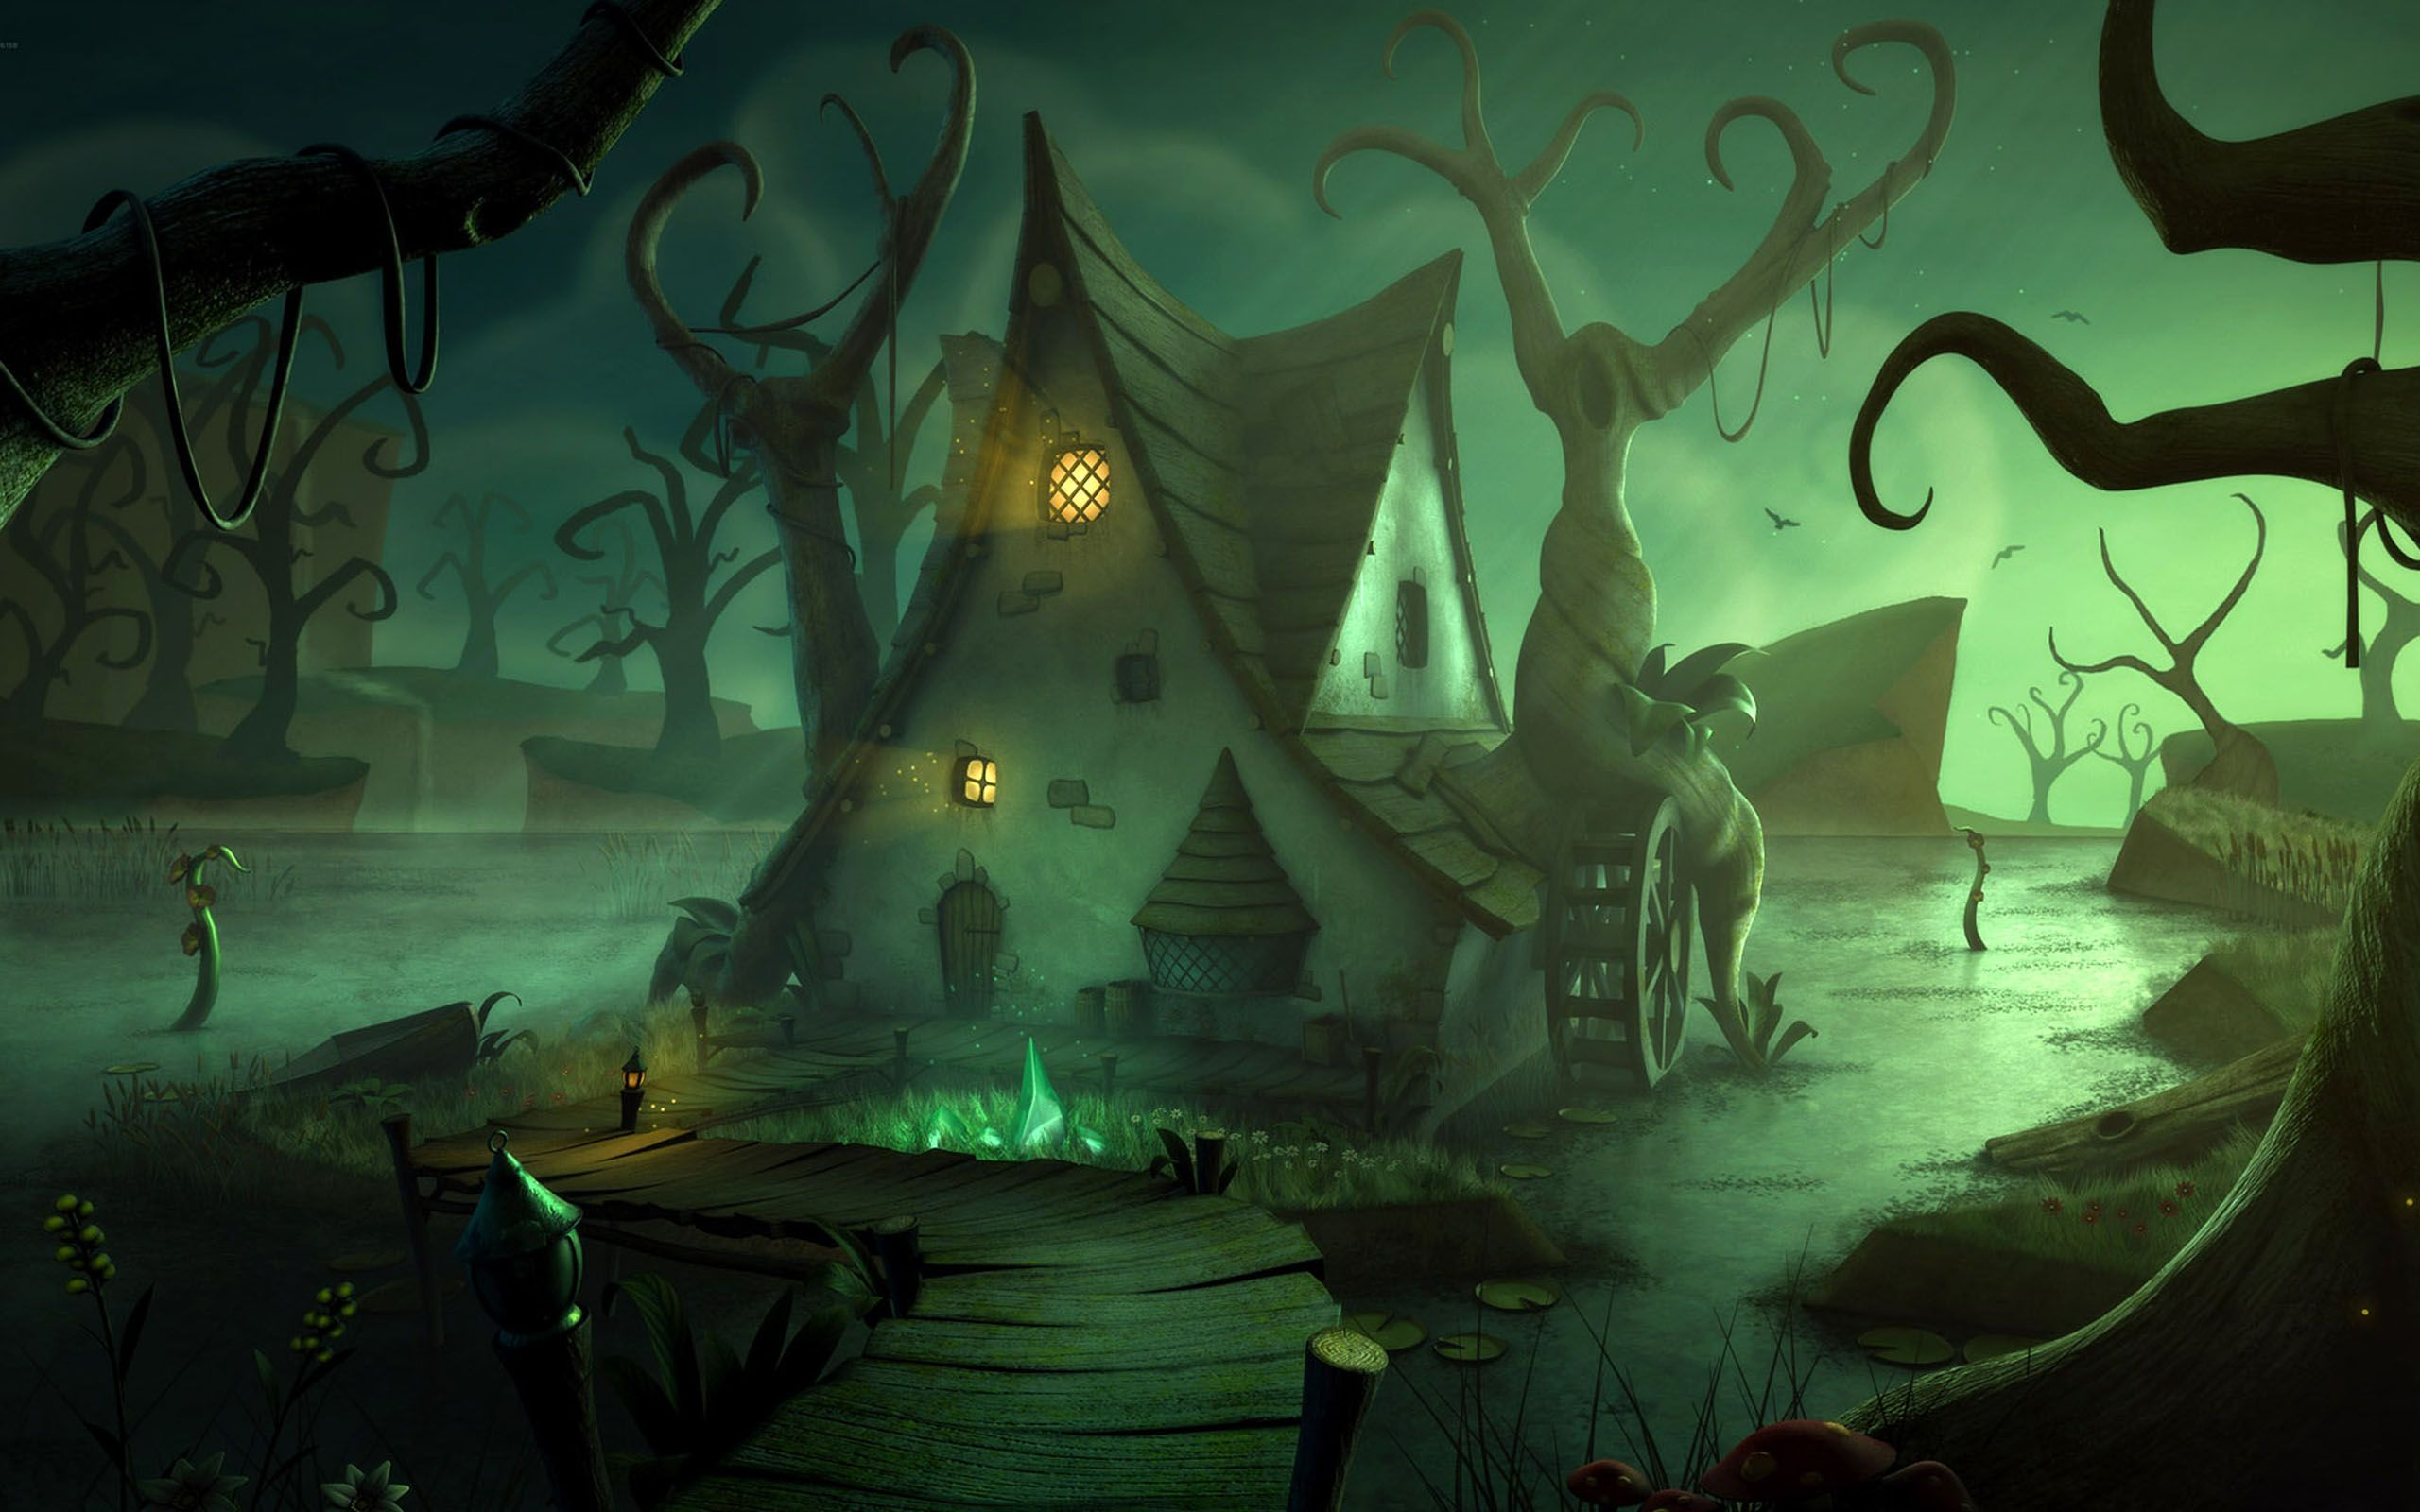 download Halloween Backgrounds for desktop 2560x1600